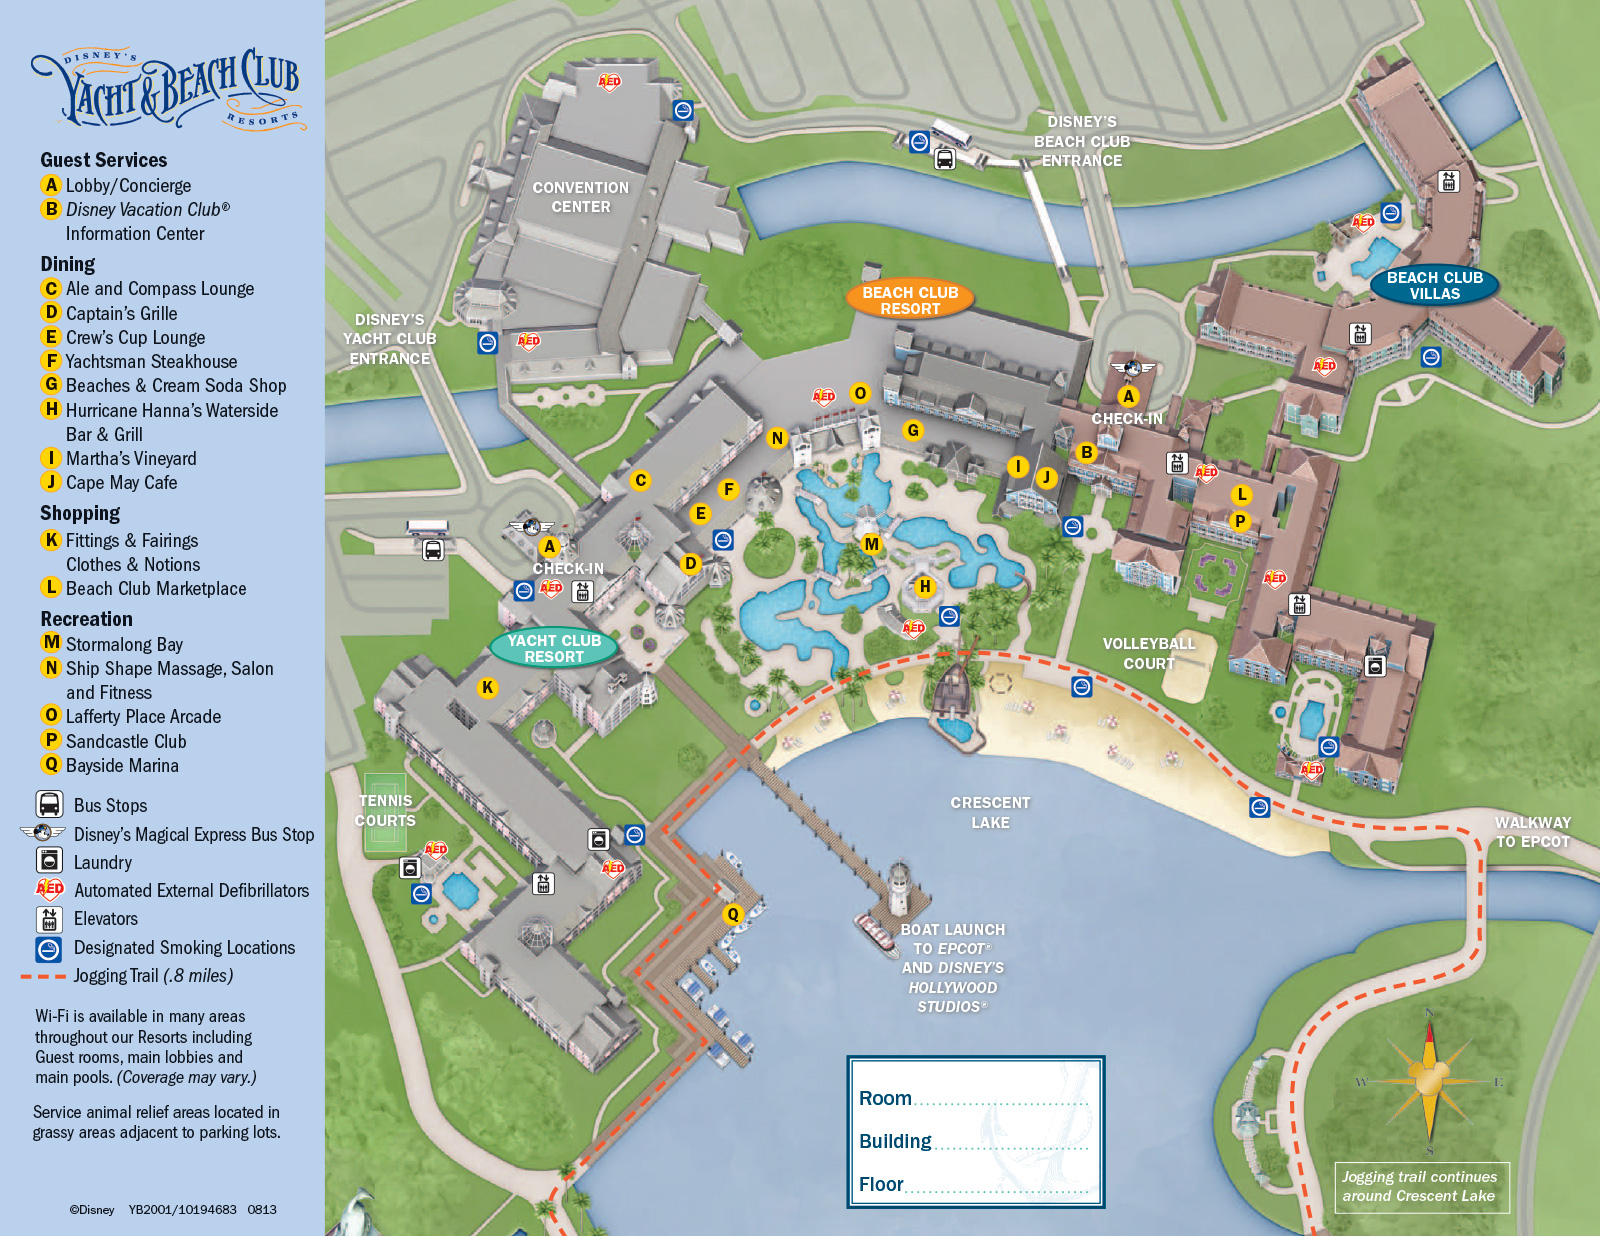 2013 Yacht Club Guide Map Photo 1 Of 1